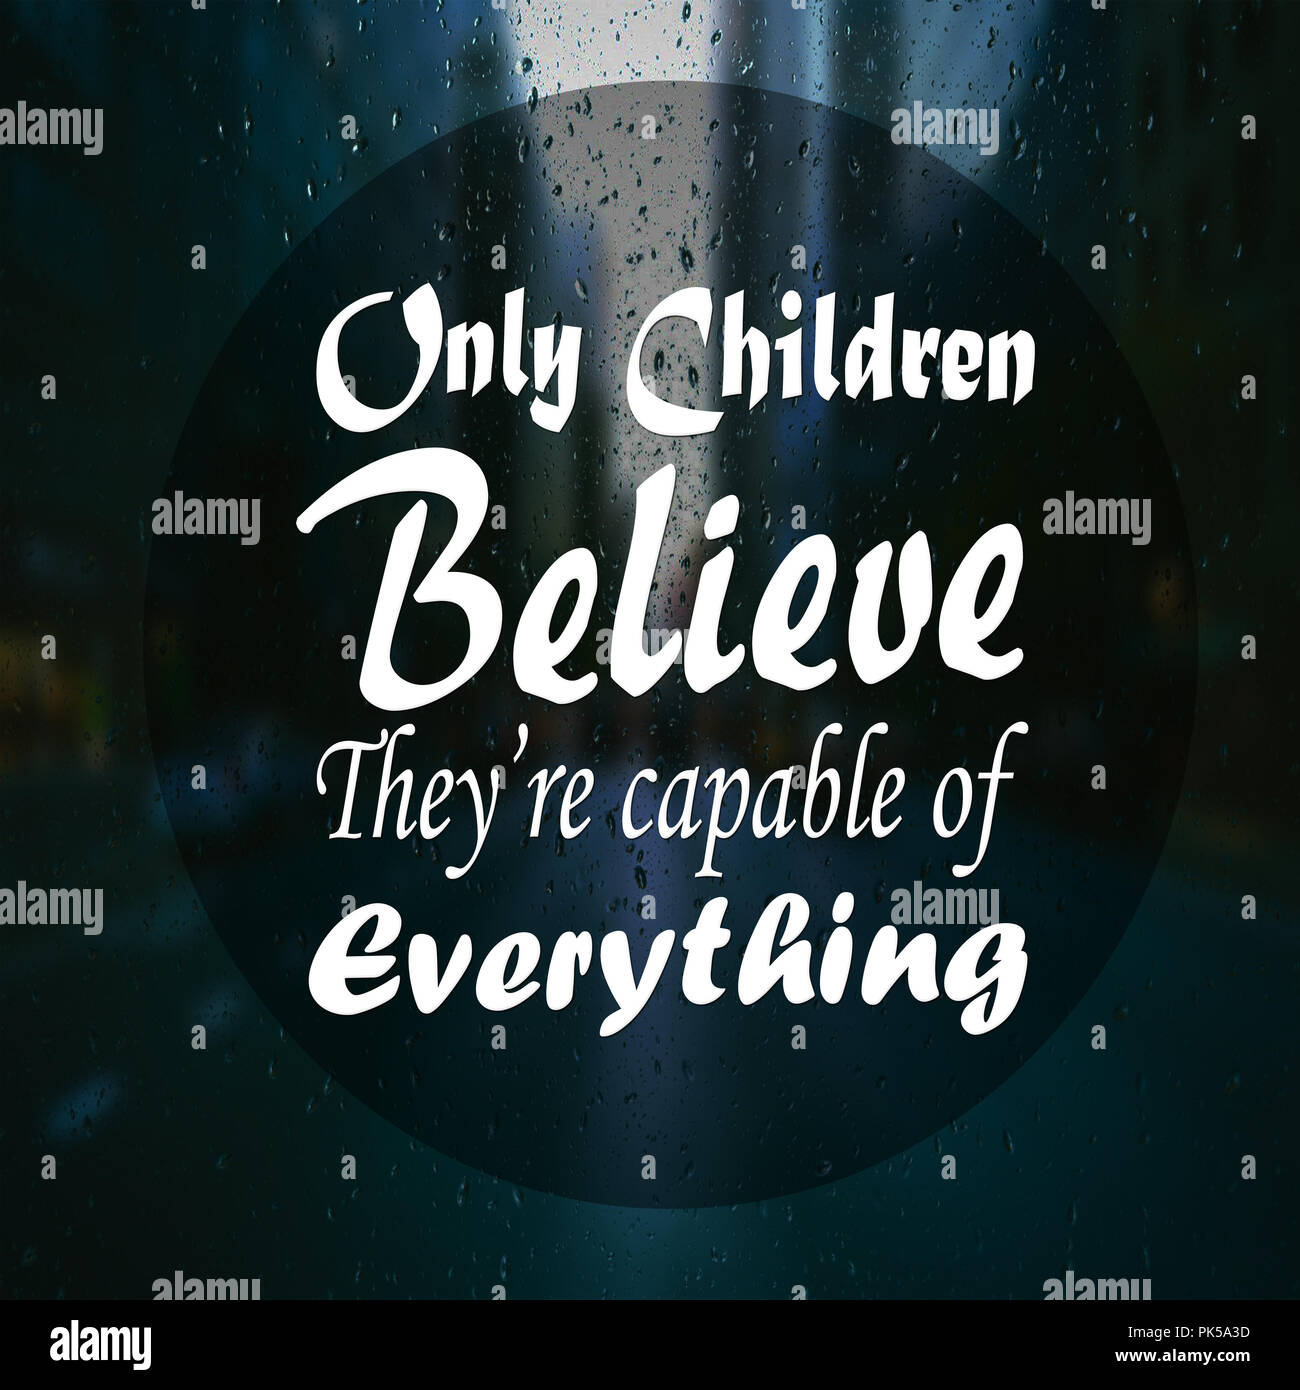 Inspirational Quotes Only children believe they are capable